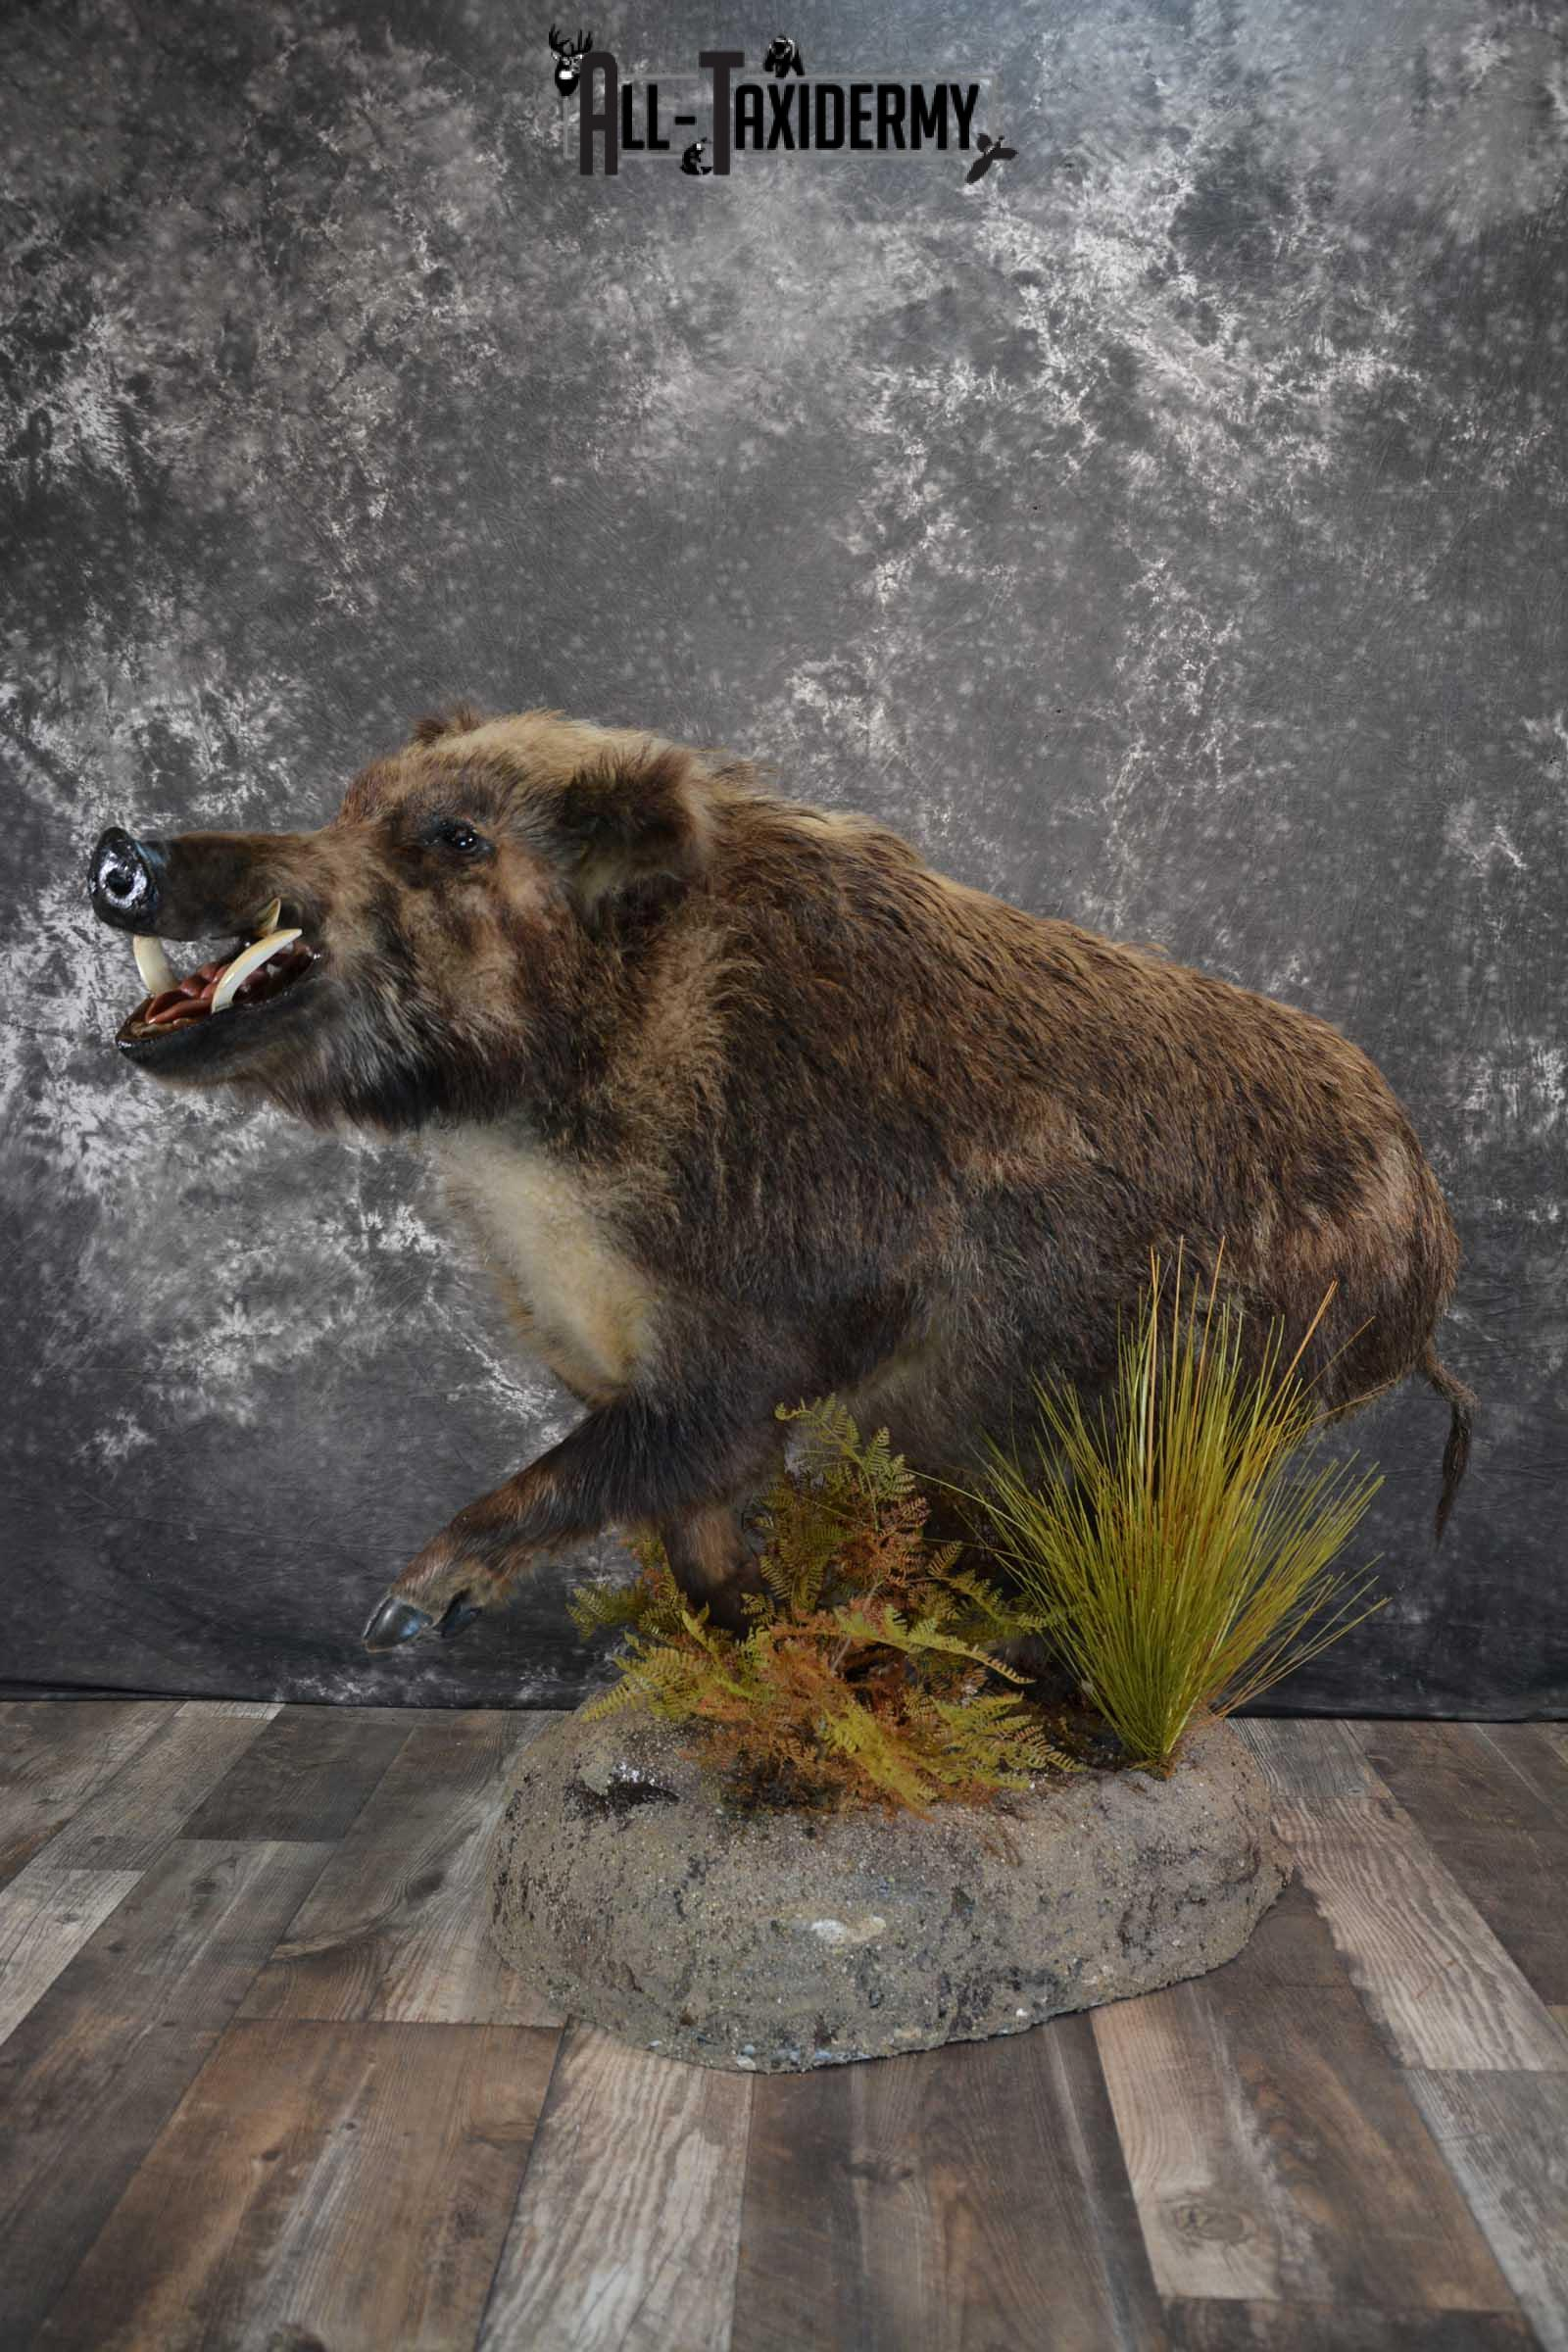 Russian Boar Life size taxidermy mount for sale SKU 1823